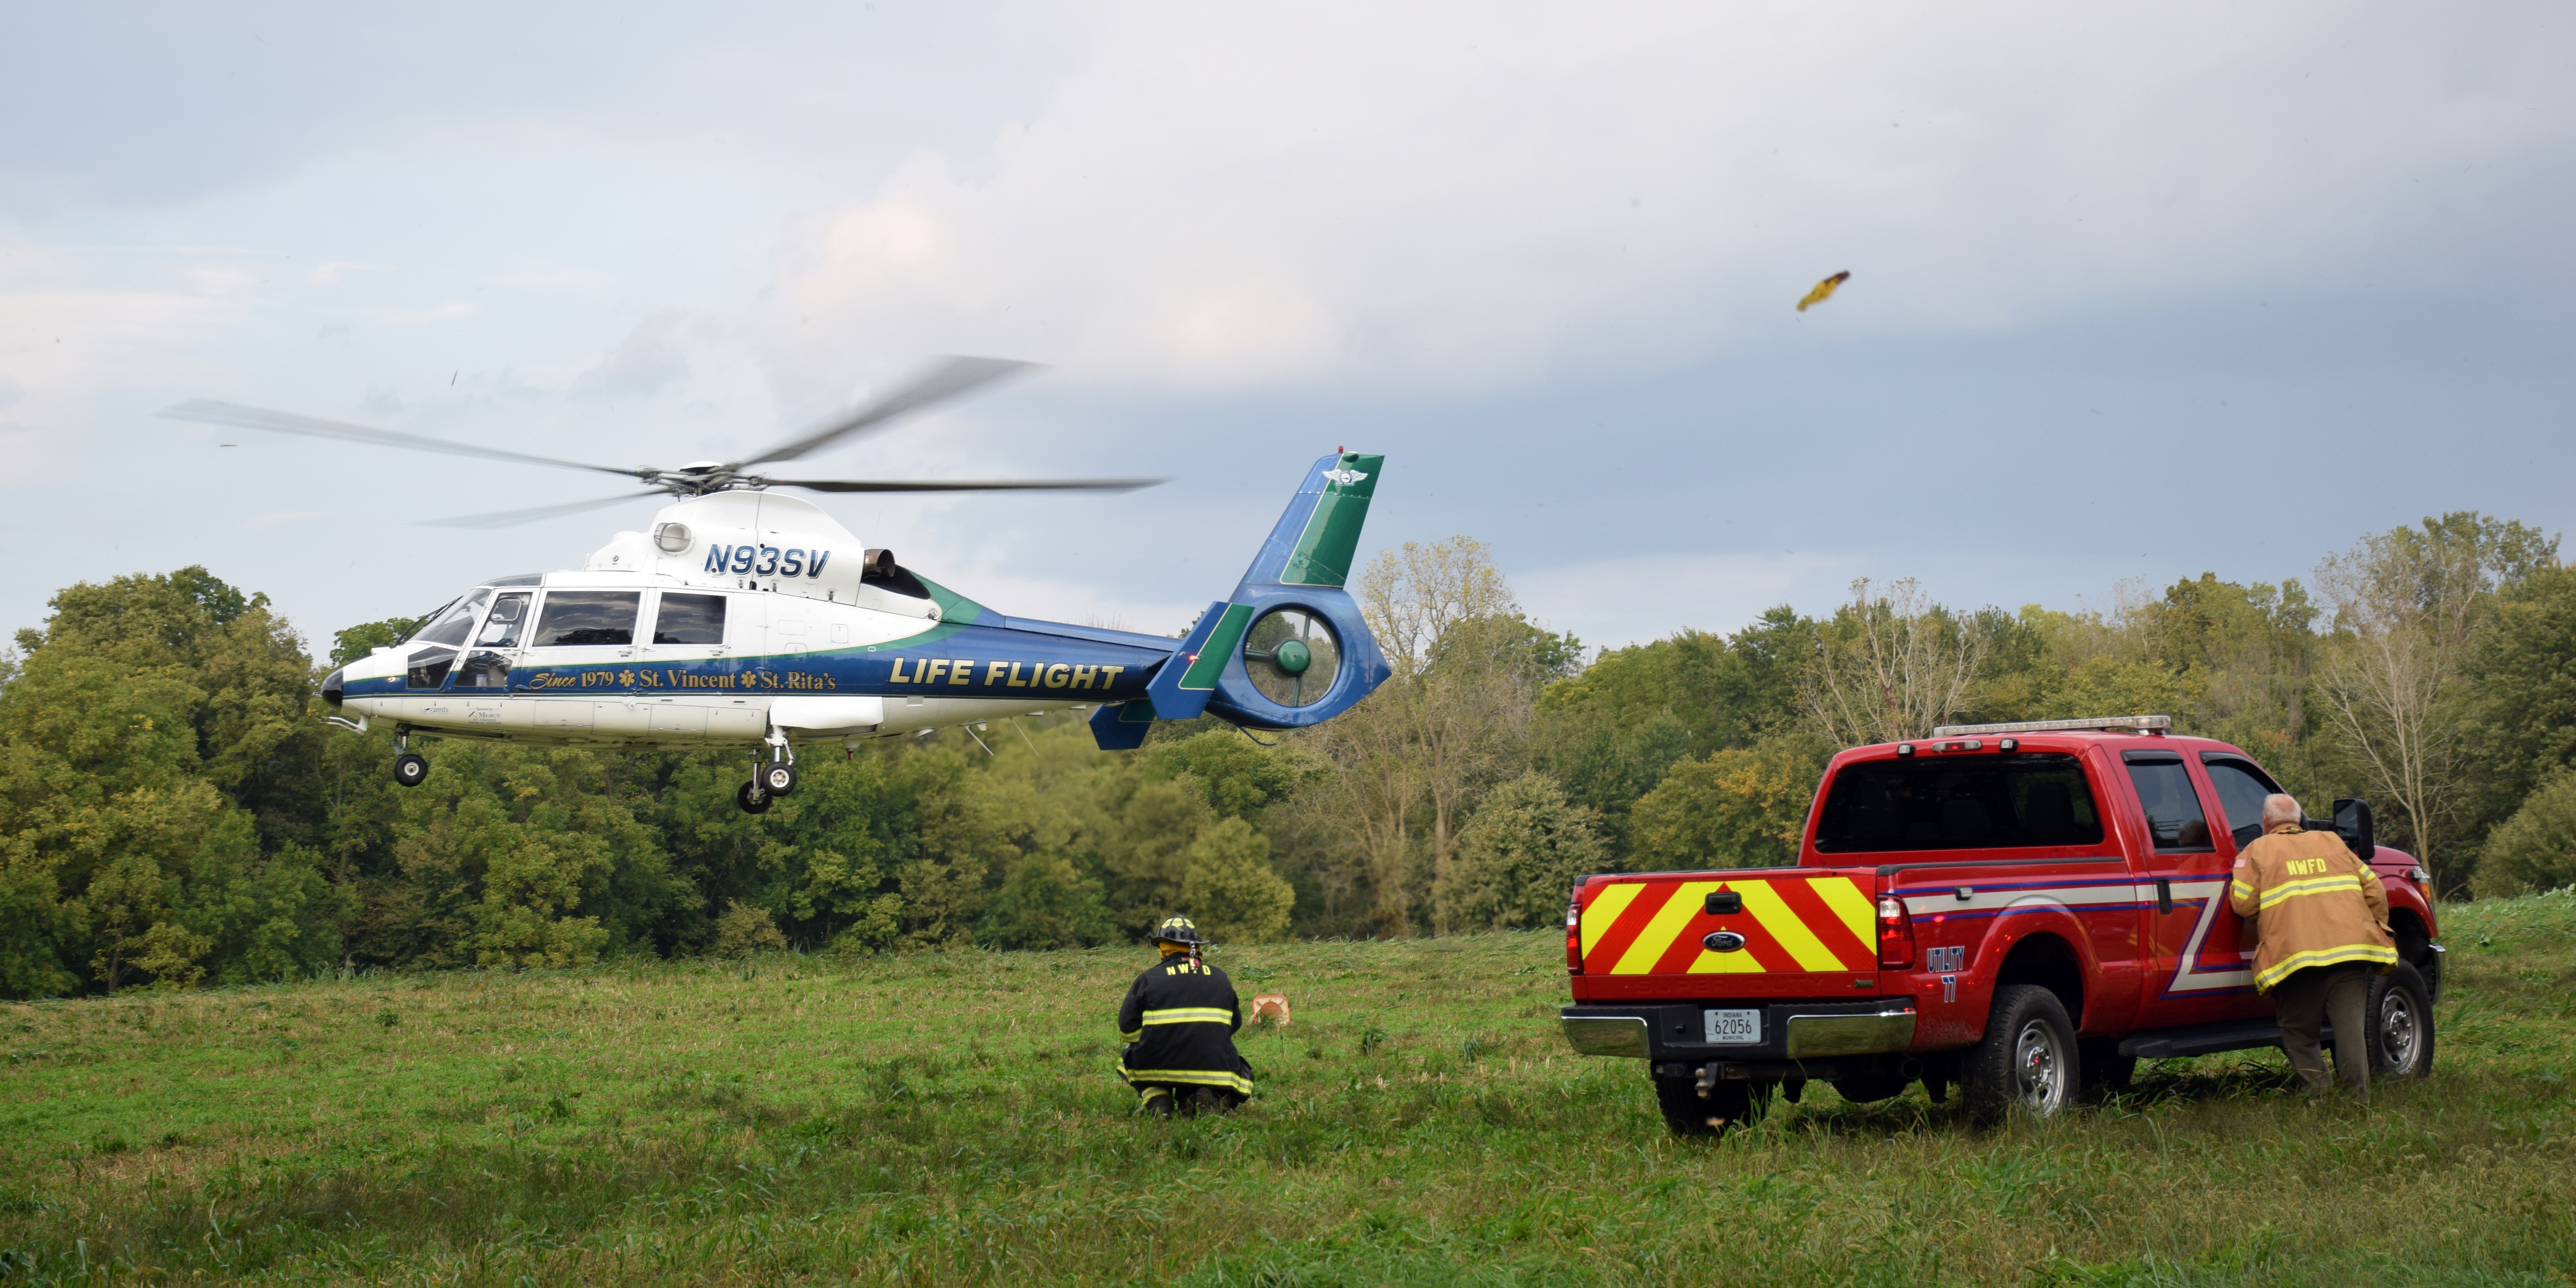 A Life Flight medical helicopter transported the moped driver from the scene.